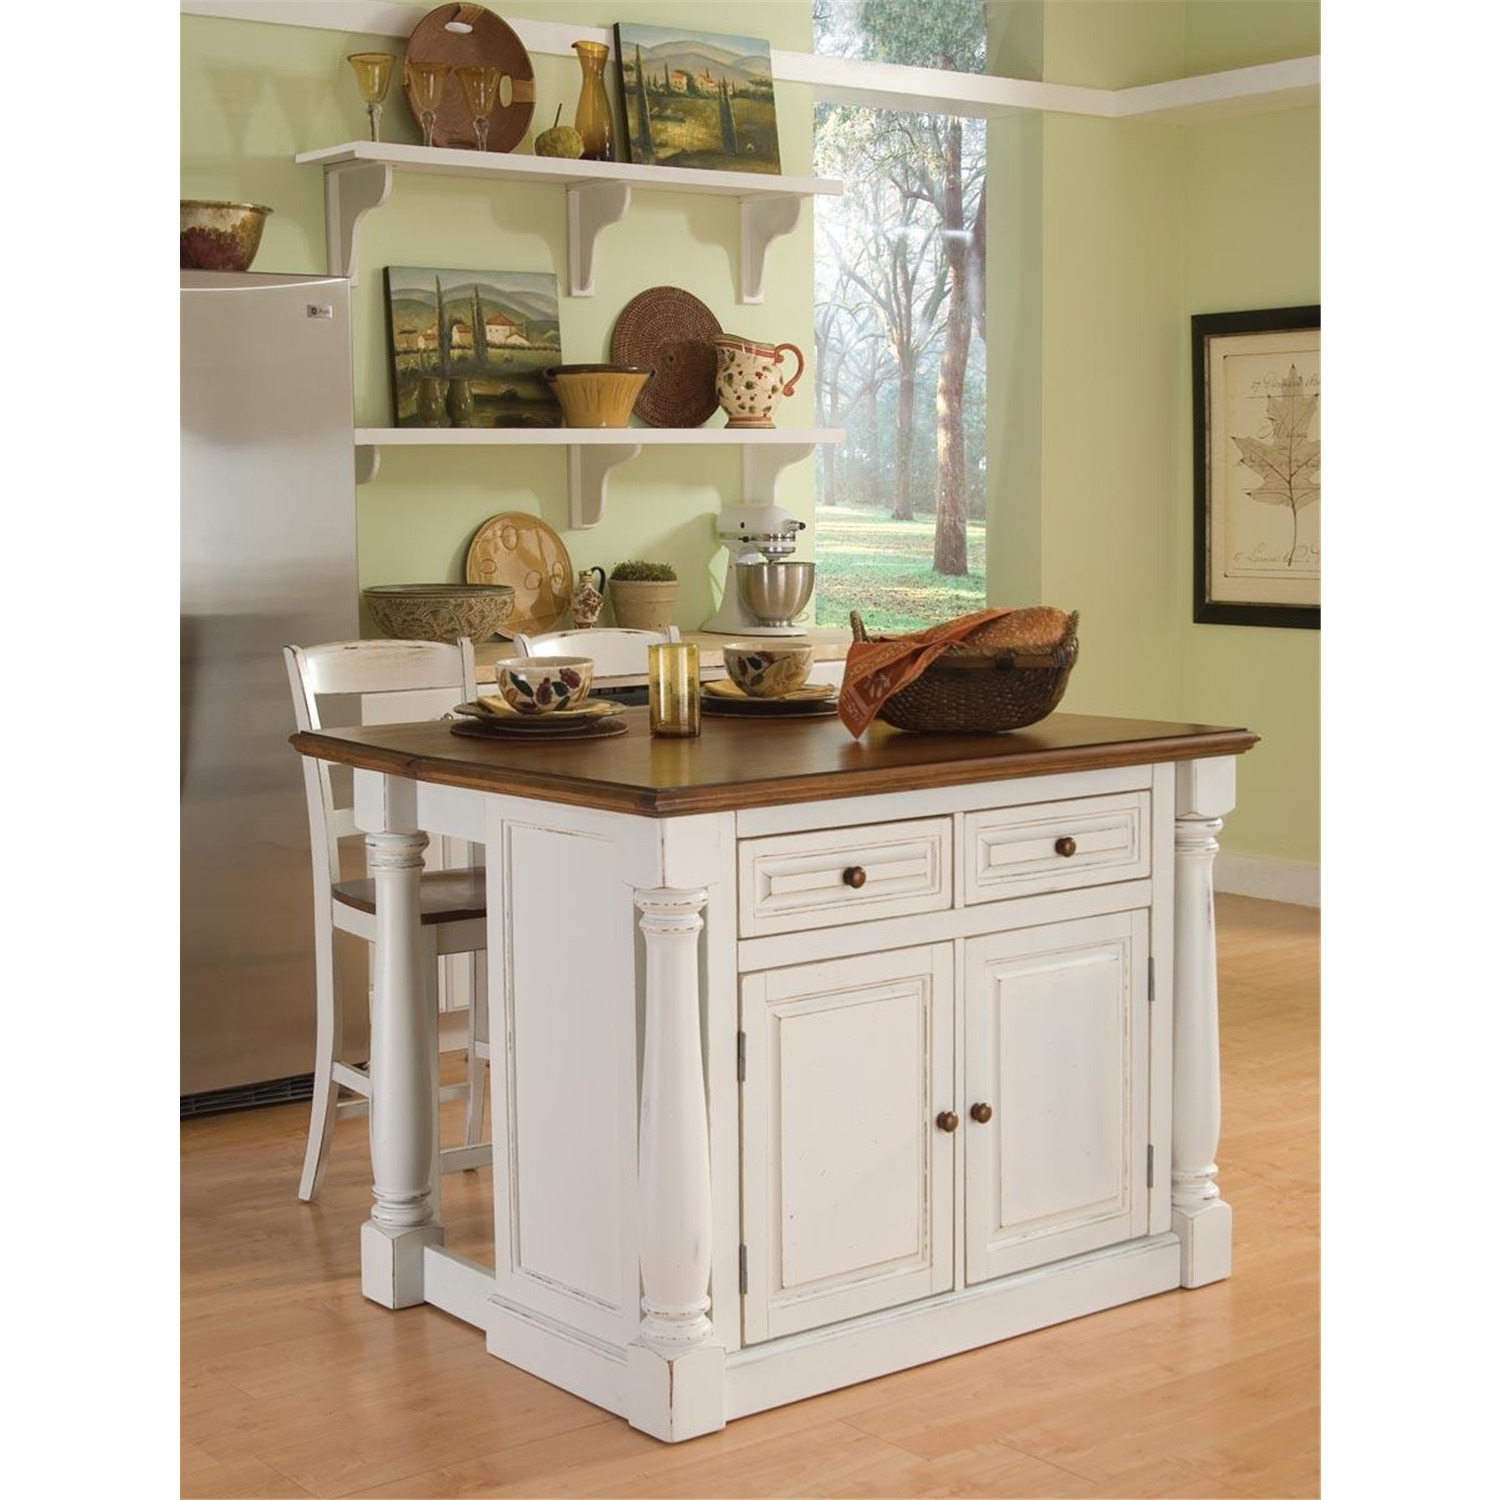 Monarch Antiqued White Kitchen Island Two Stools From